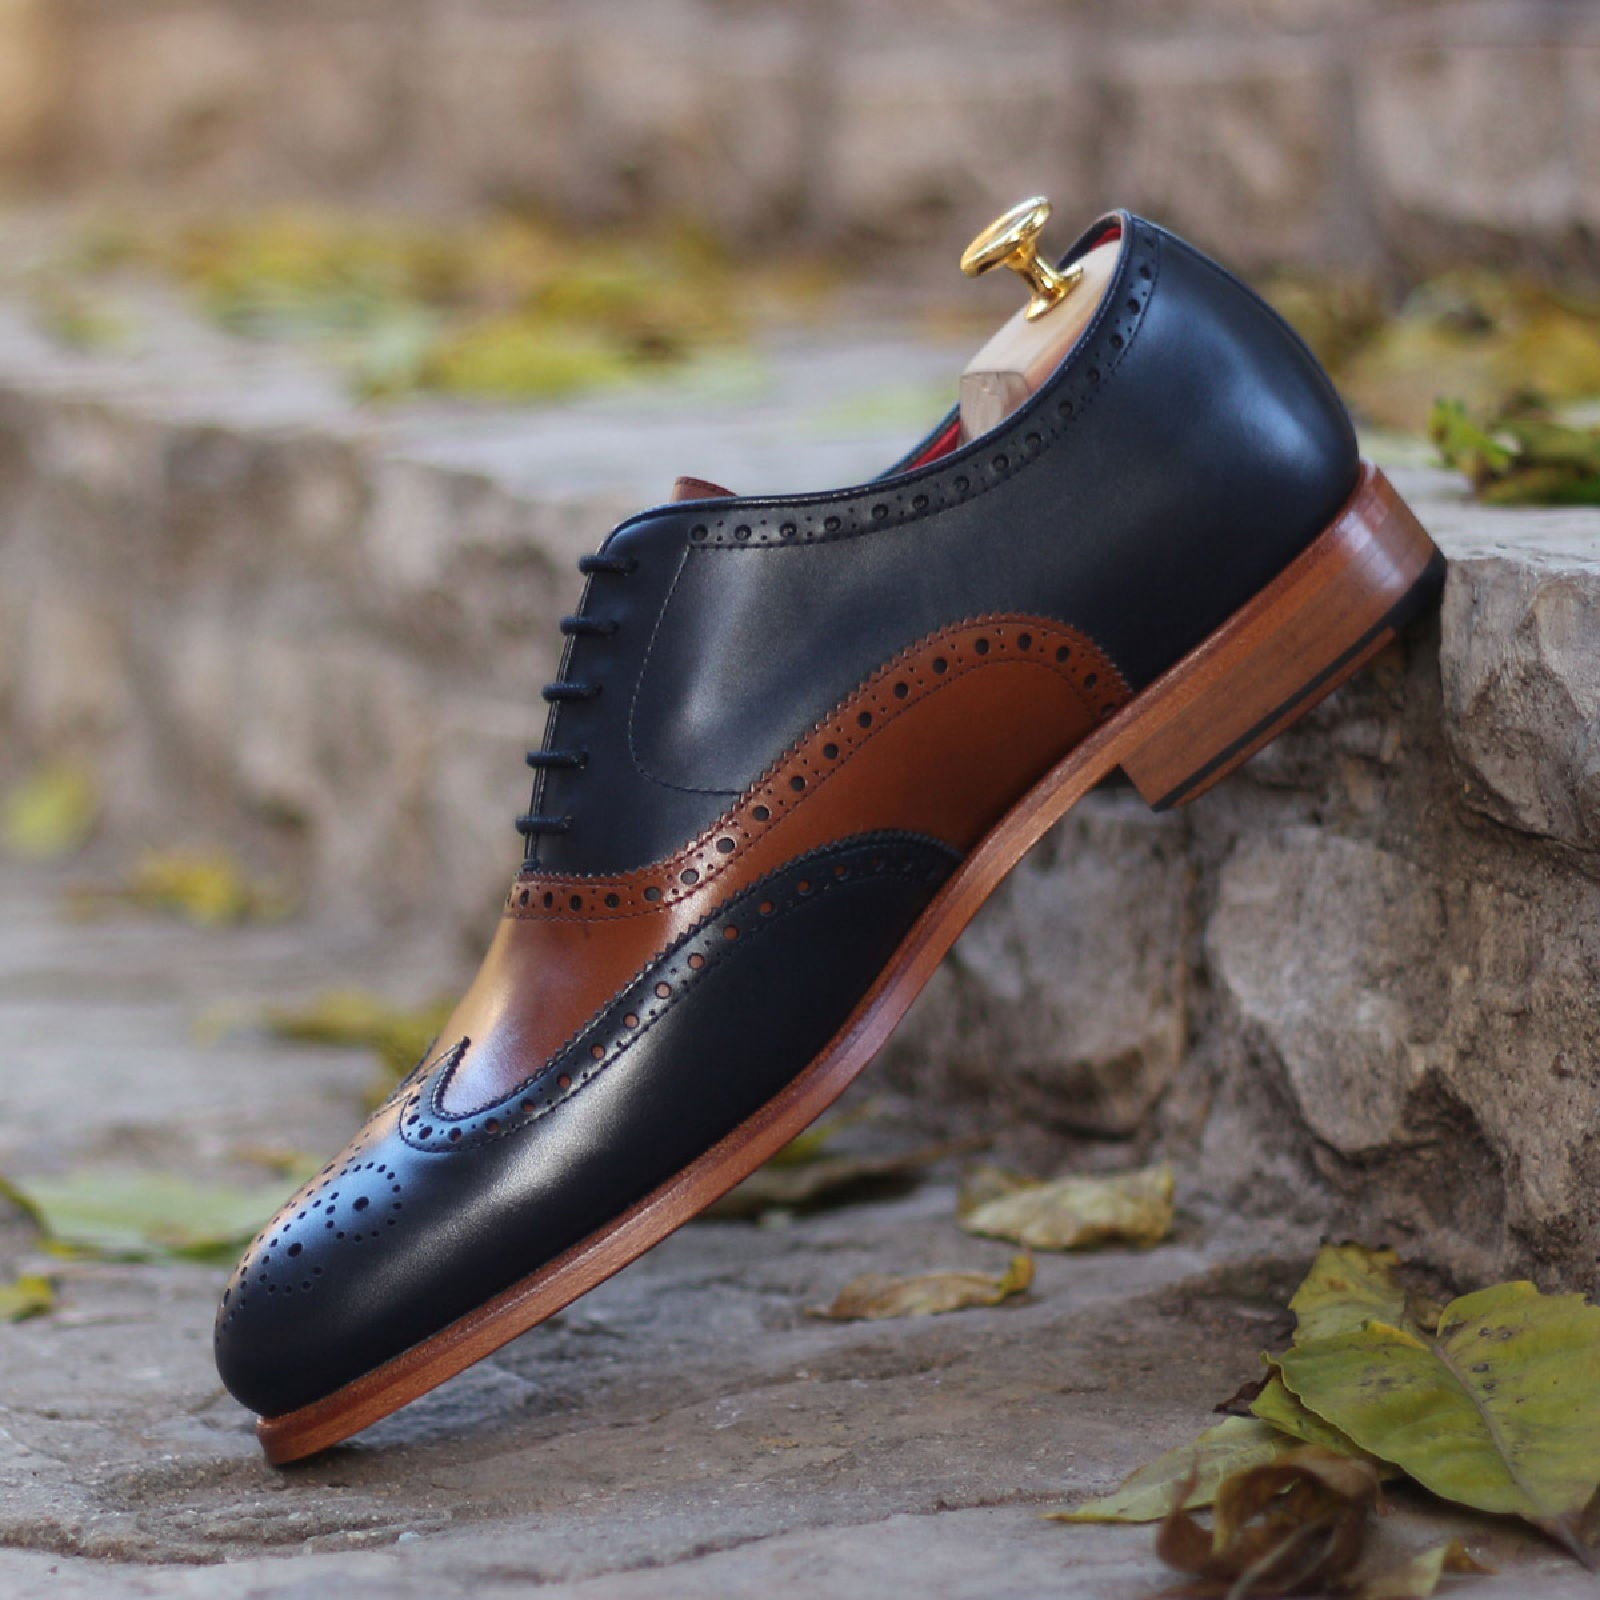 Middle Navy and Cognac Box Calf leather Full Brogue Shoe